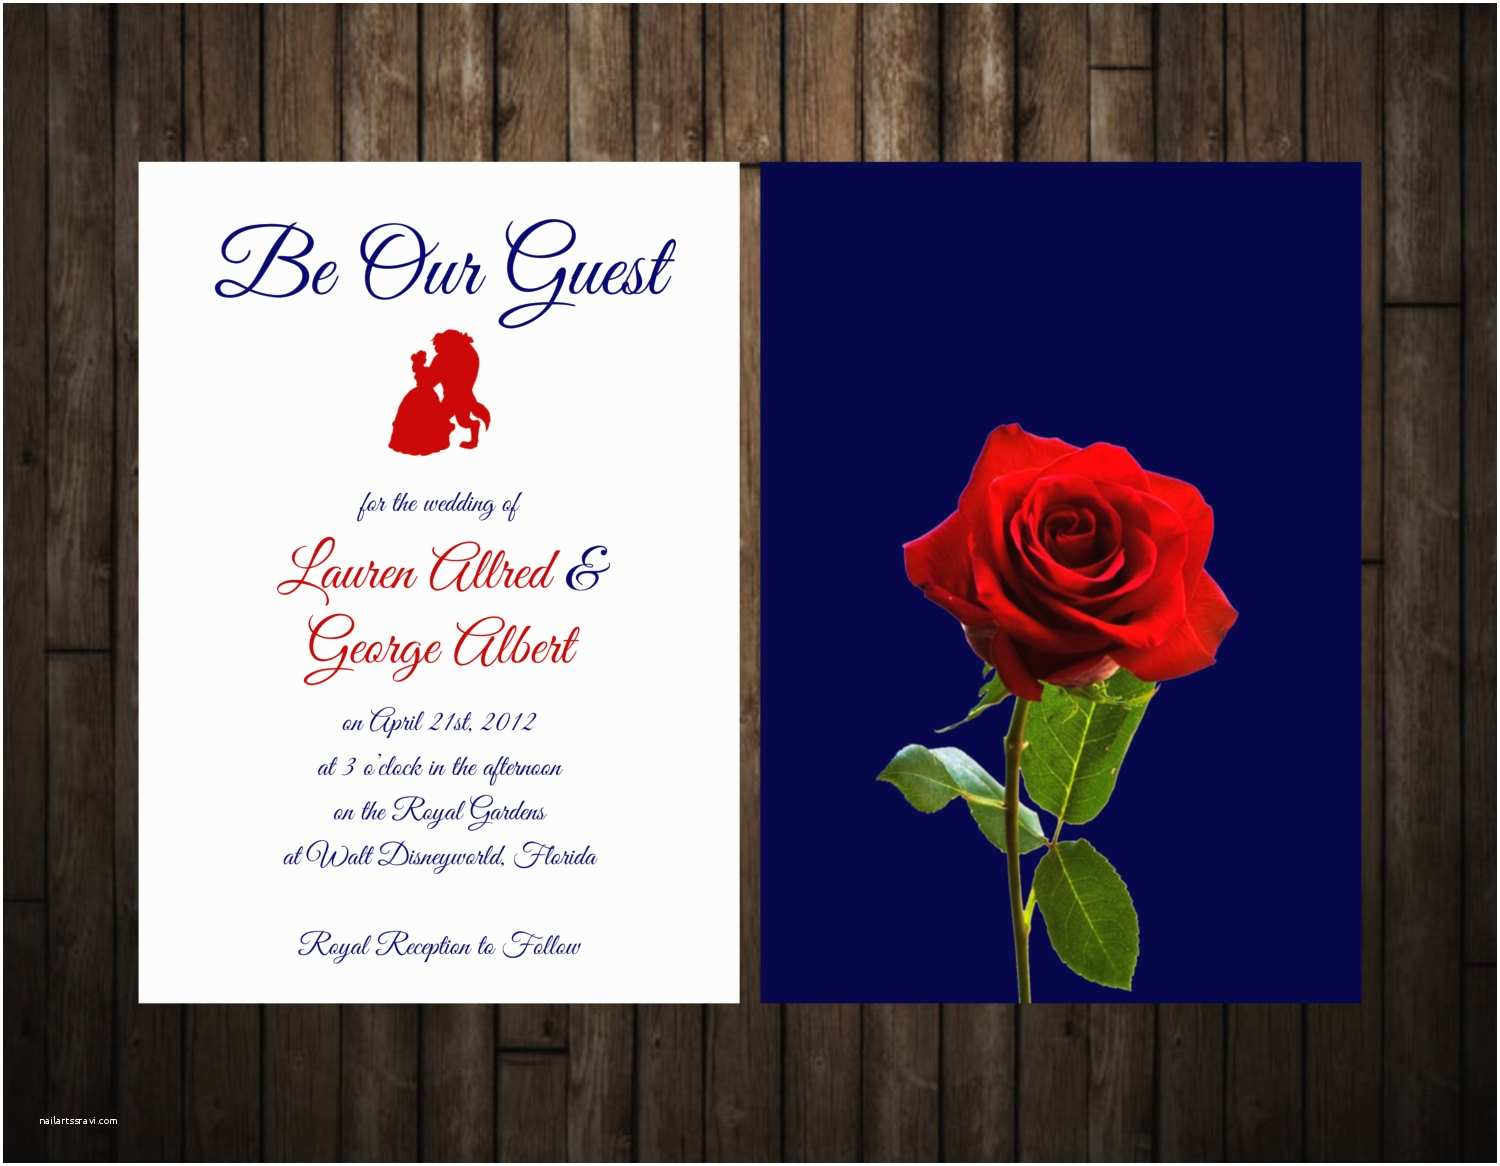 Beauty and the Beast Wedding Invitations Beauty and the Beast Wedding Invitation by Stationerybylaly